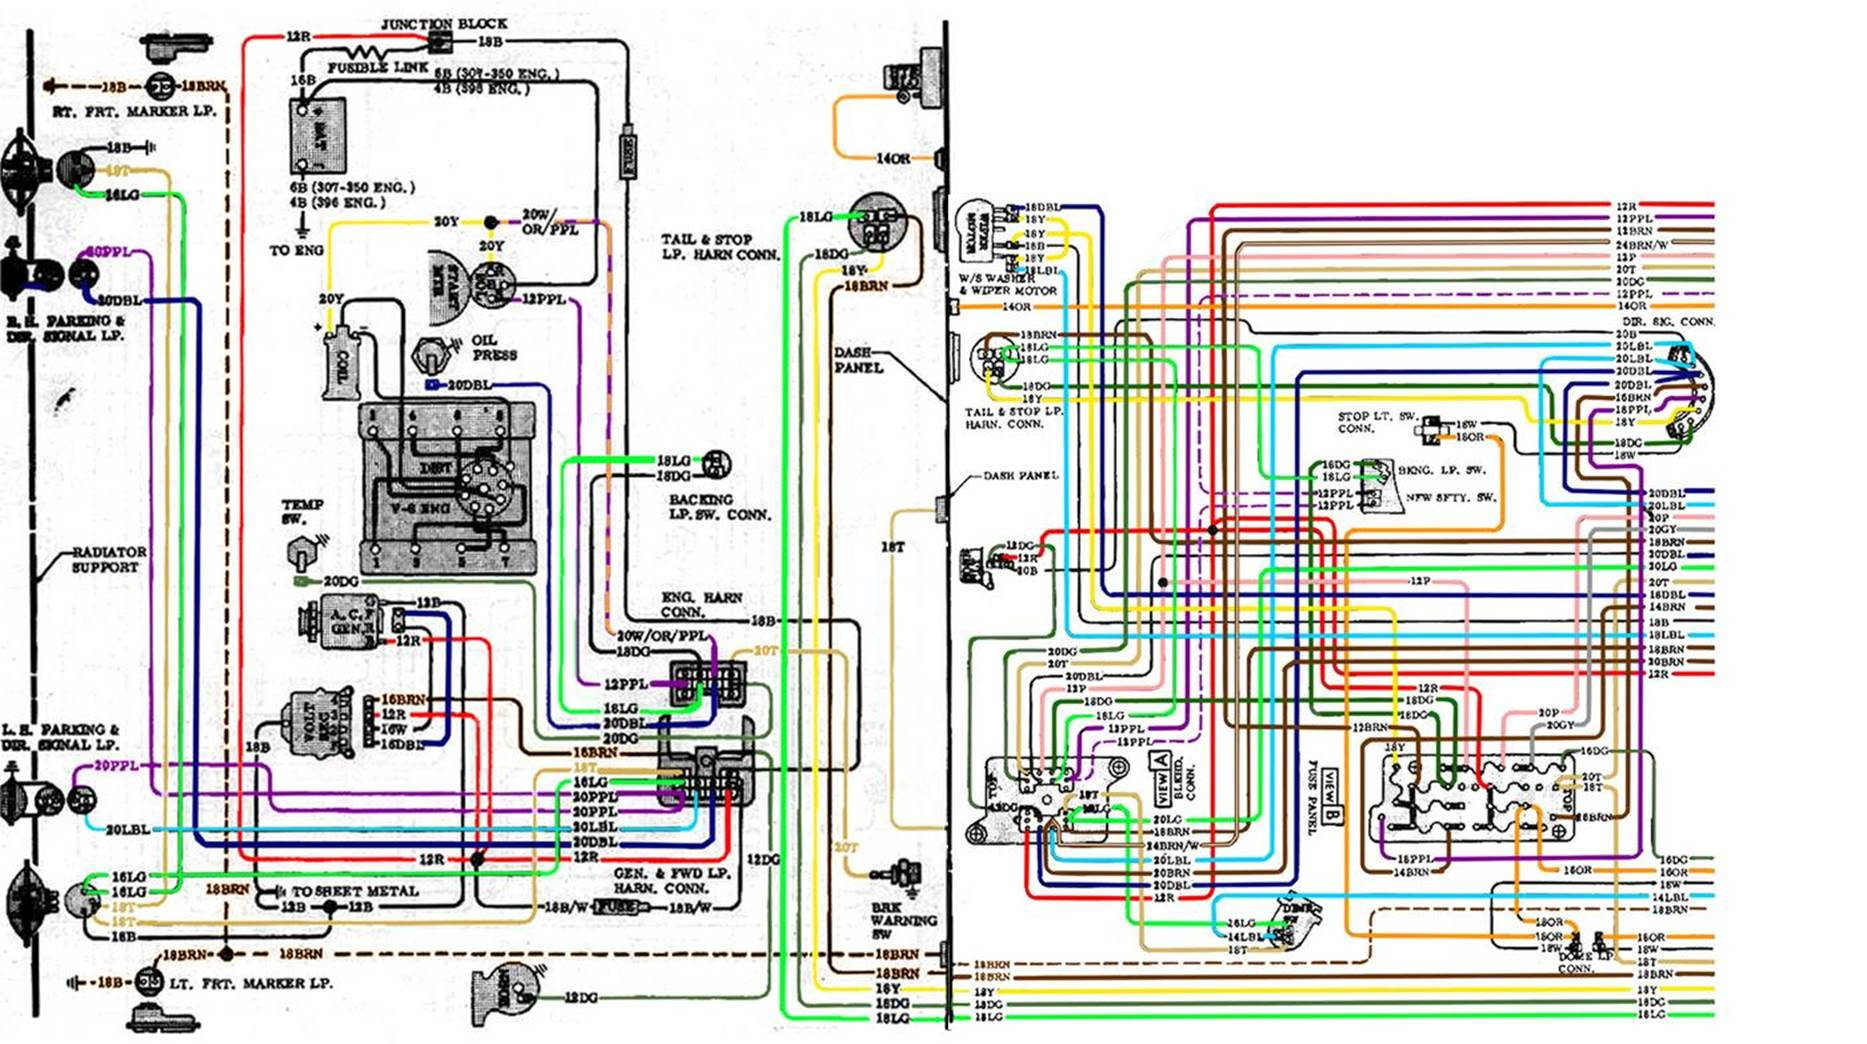 image002 67 72 chevy wiring diagram 1972 chevy el camino wiring diagram at alyssarenee.co